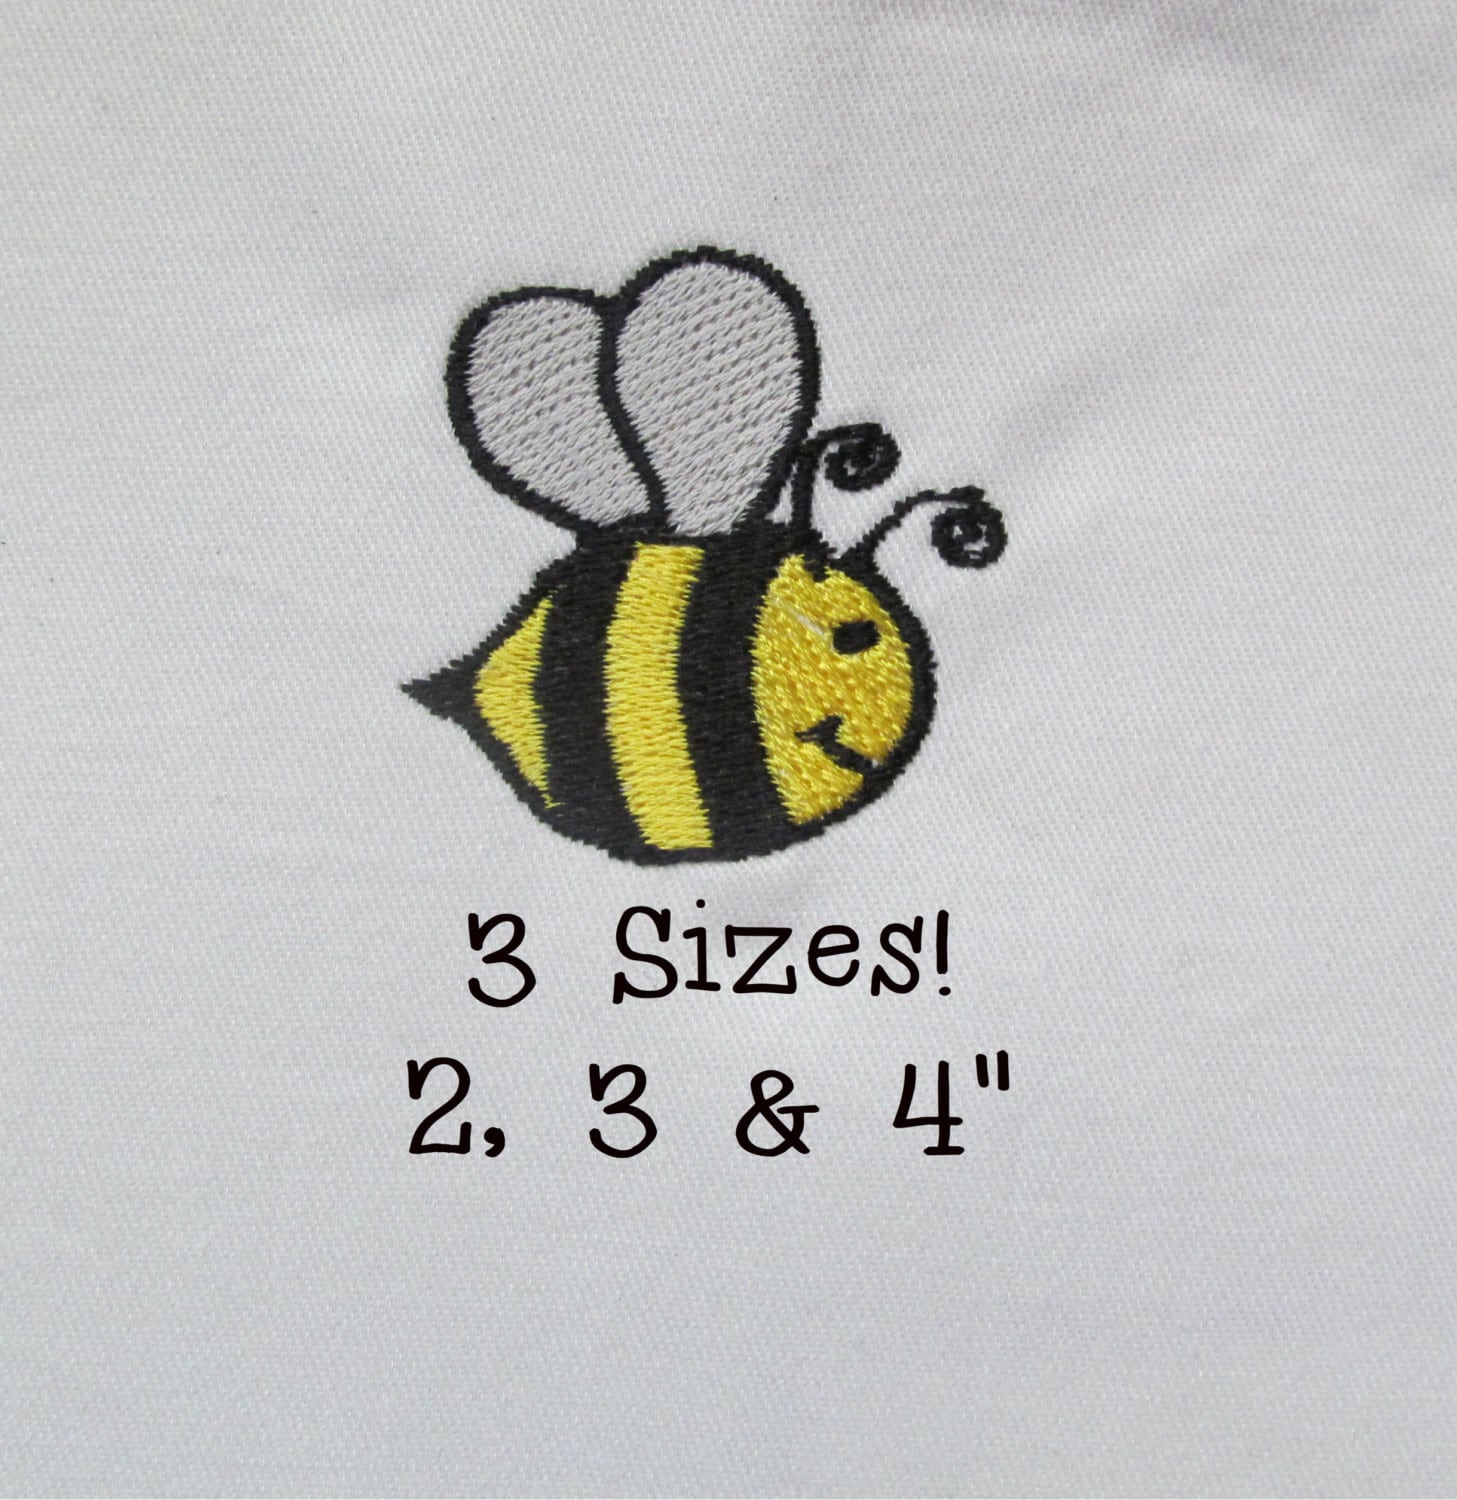 Bumble bee embroidery designs car pictures -  Zoom